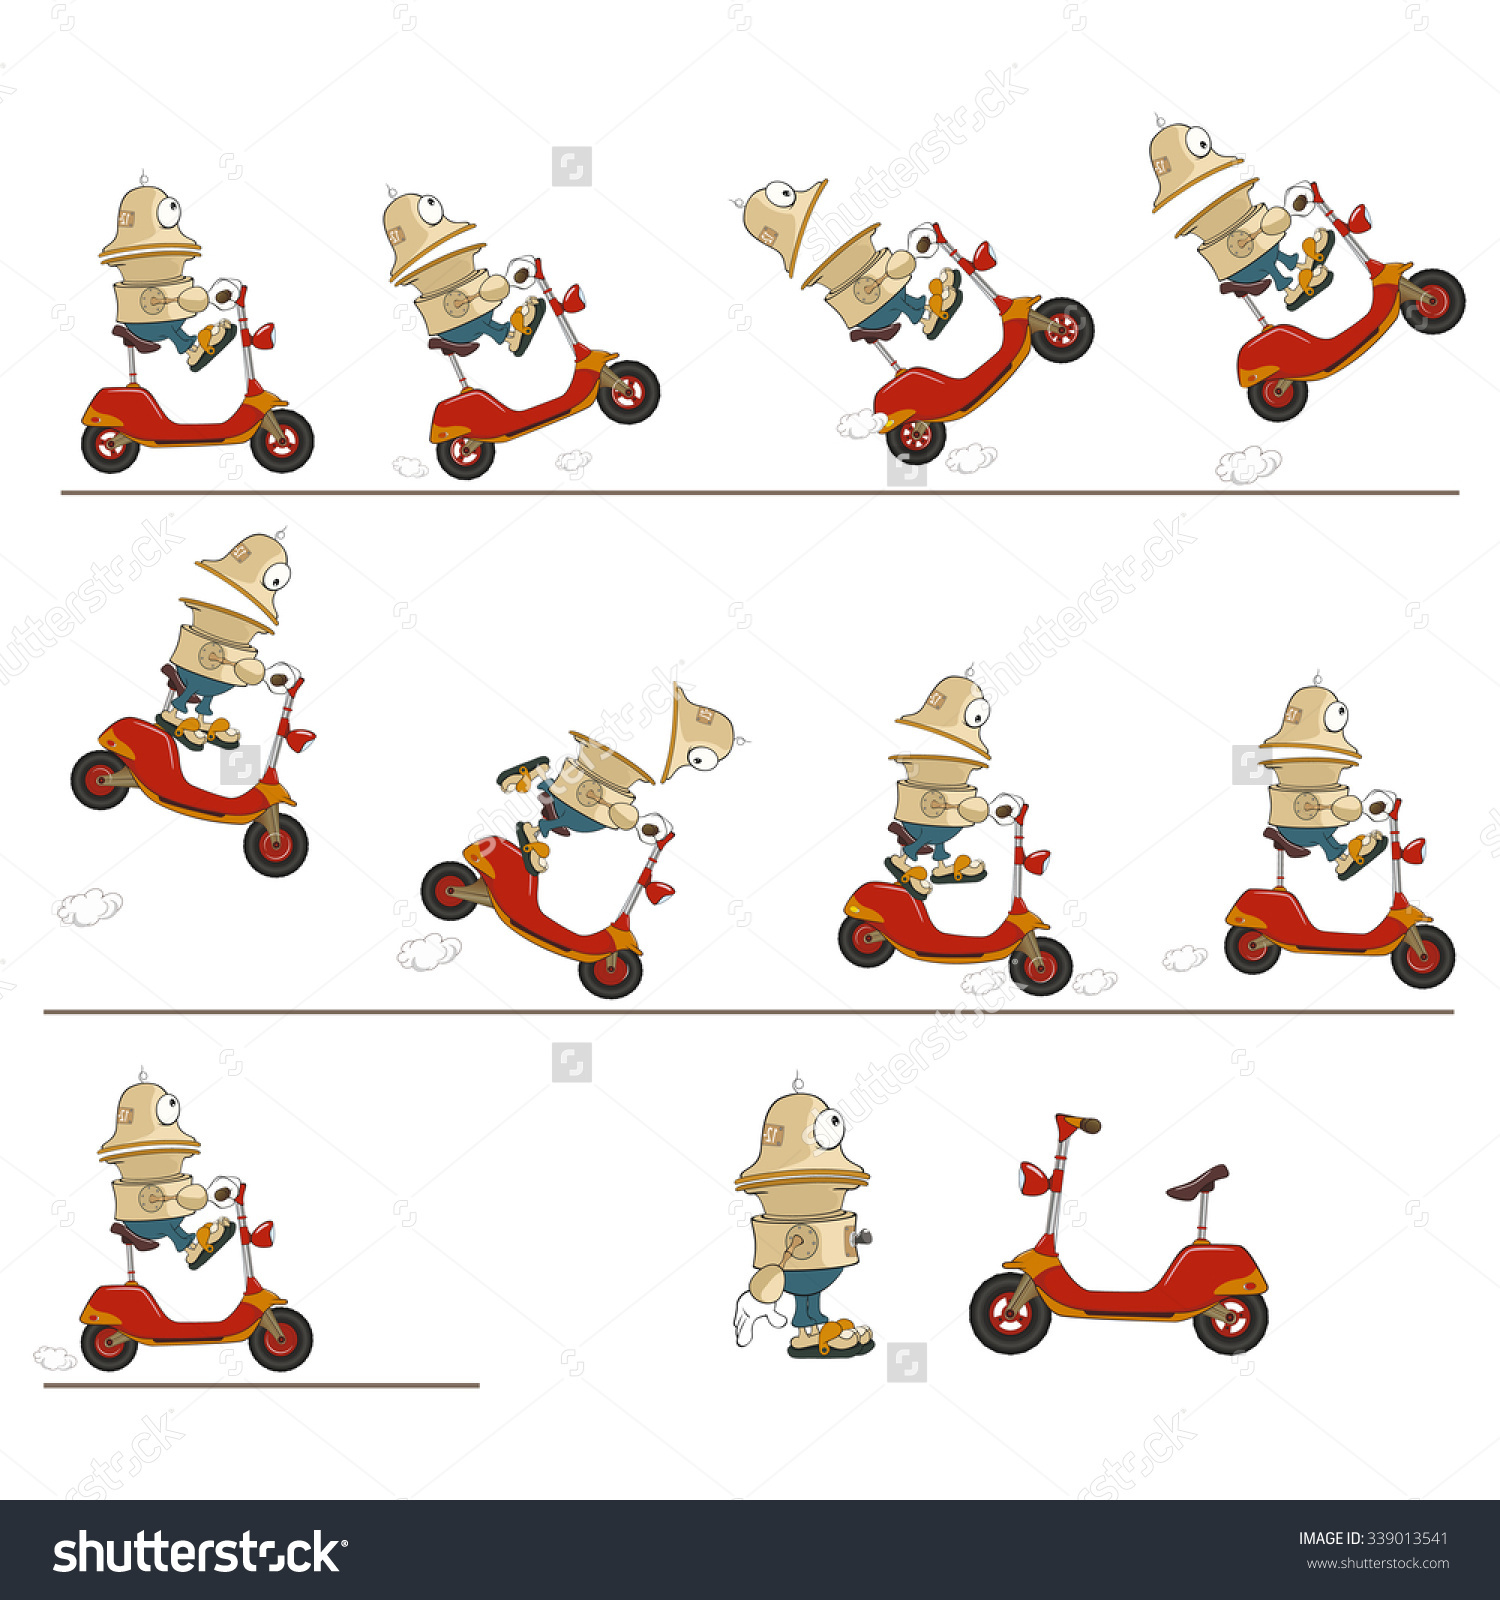 Character clipart to use for storyboarding jpg freeuse Vector Cartoon Character Cute Robot Scooter Stock Vector 339013541 ... jpg freeuse